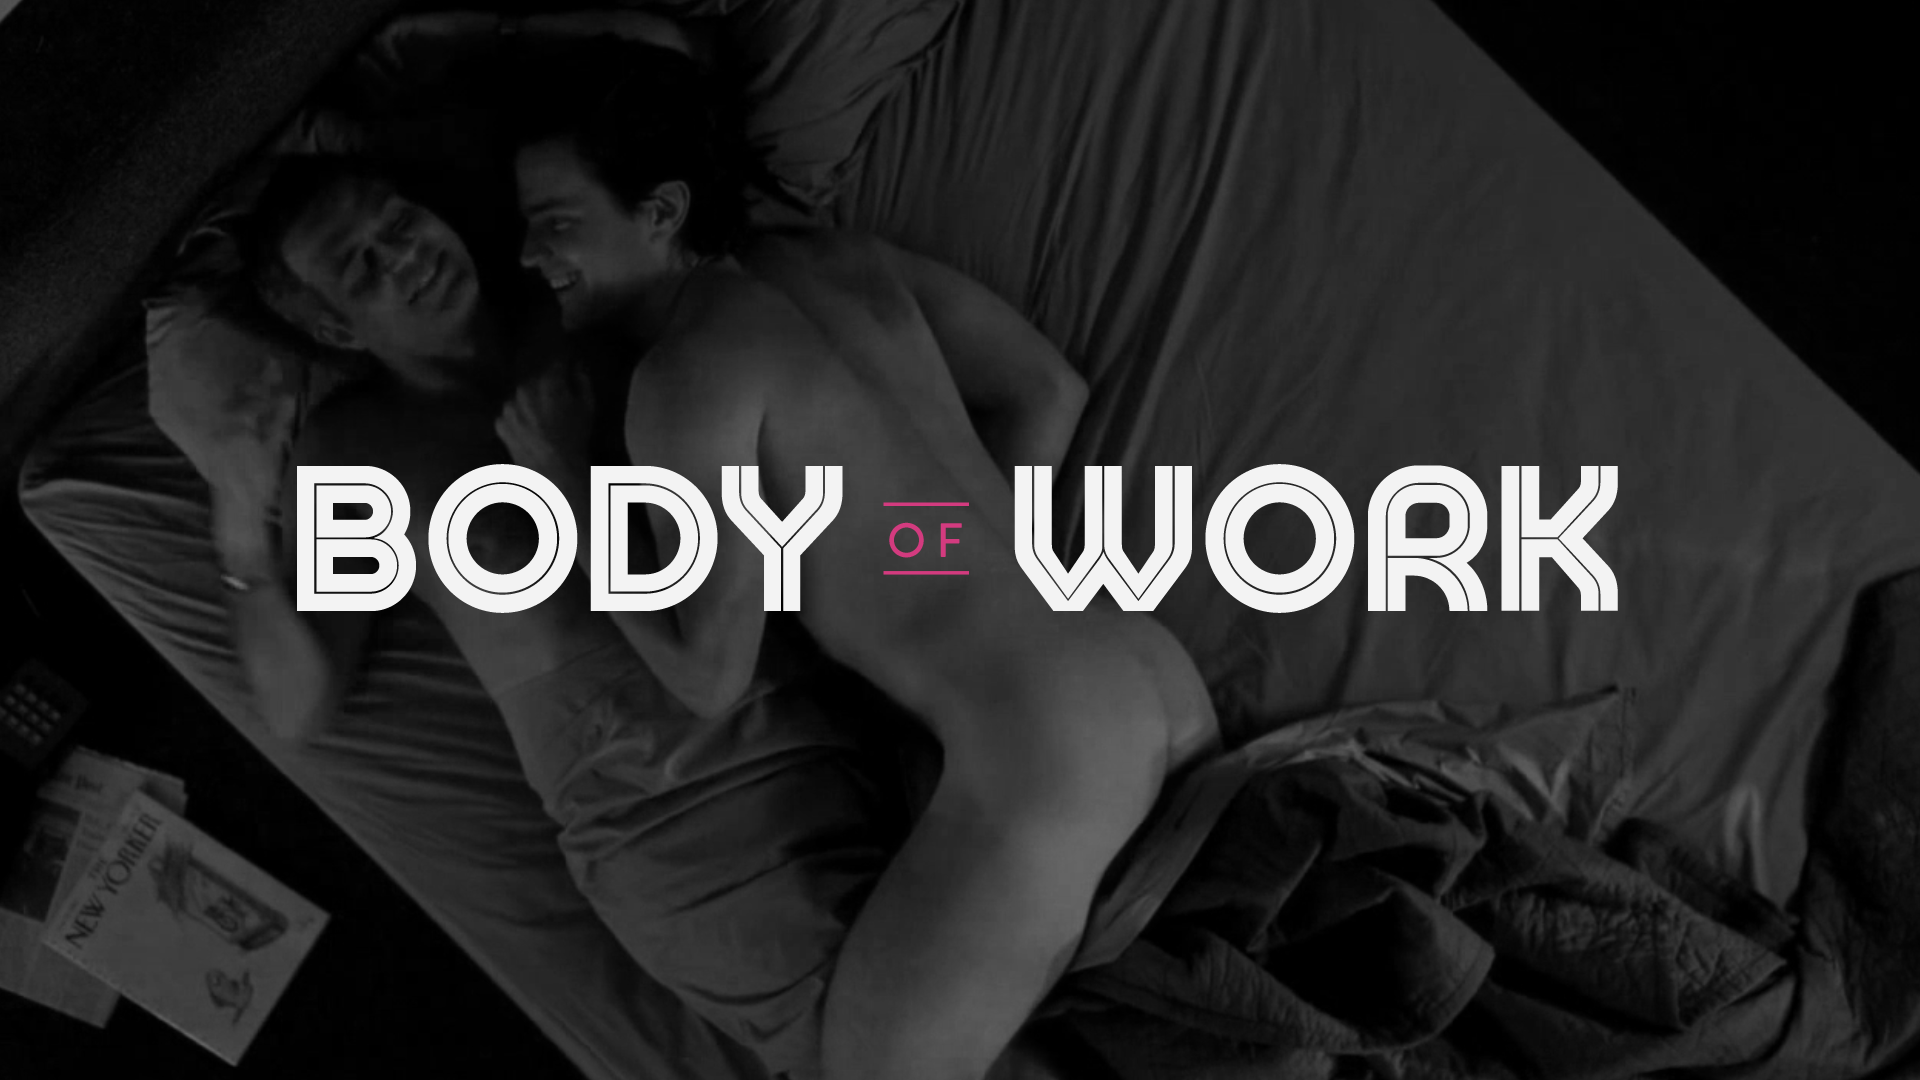 Bodyofwork actor 00 00 04 09 still002 nude preview image